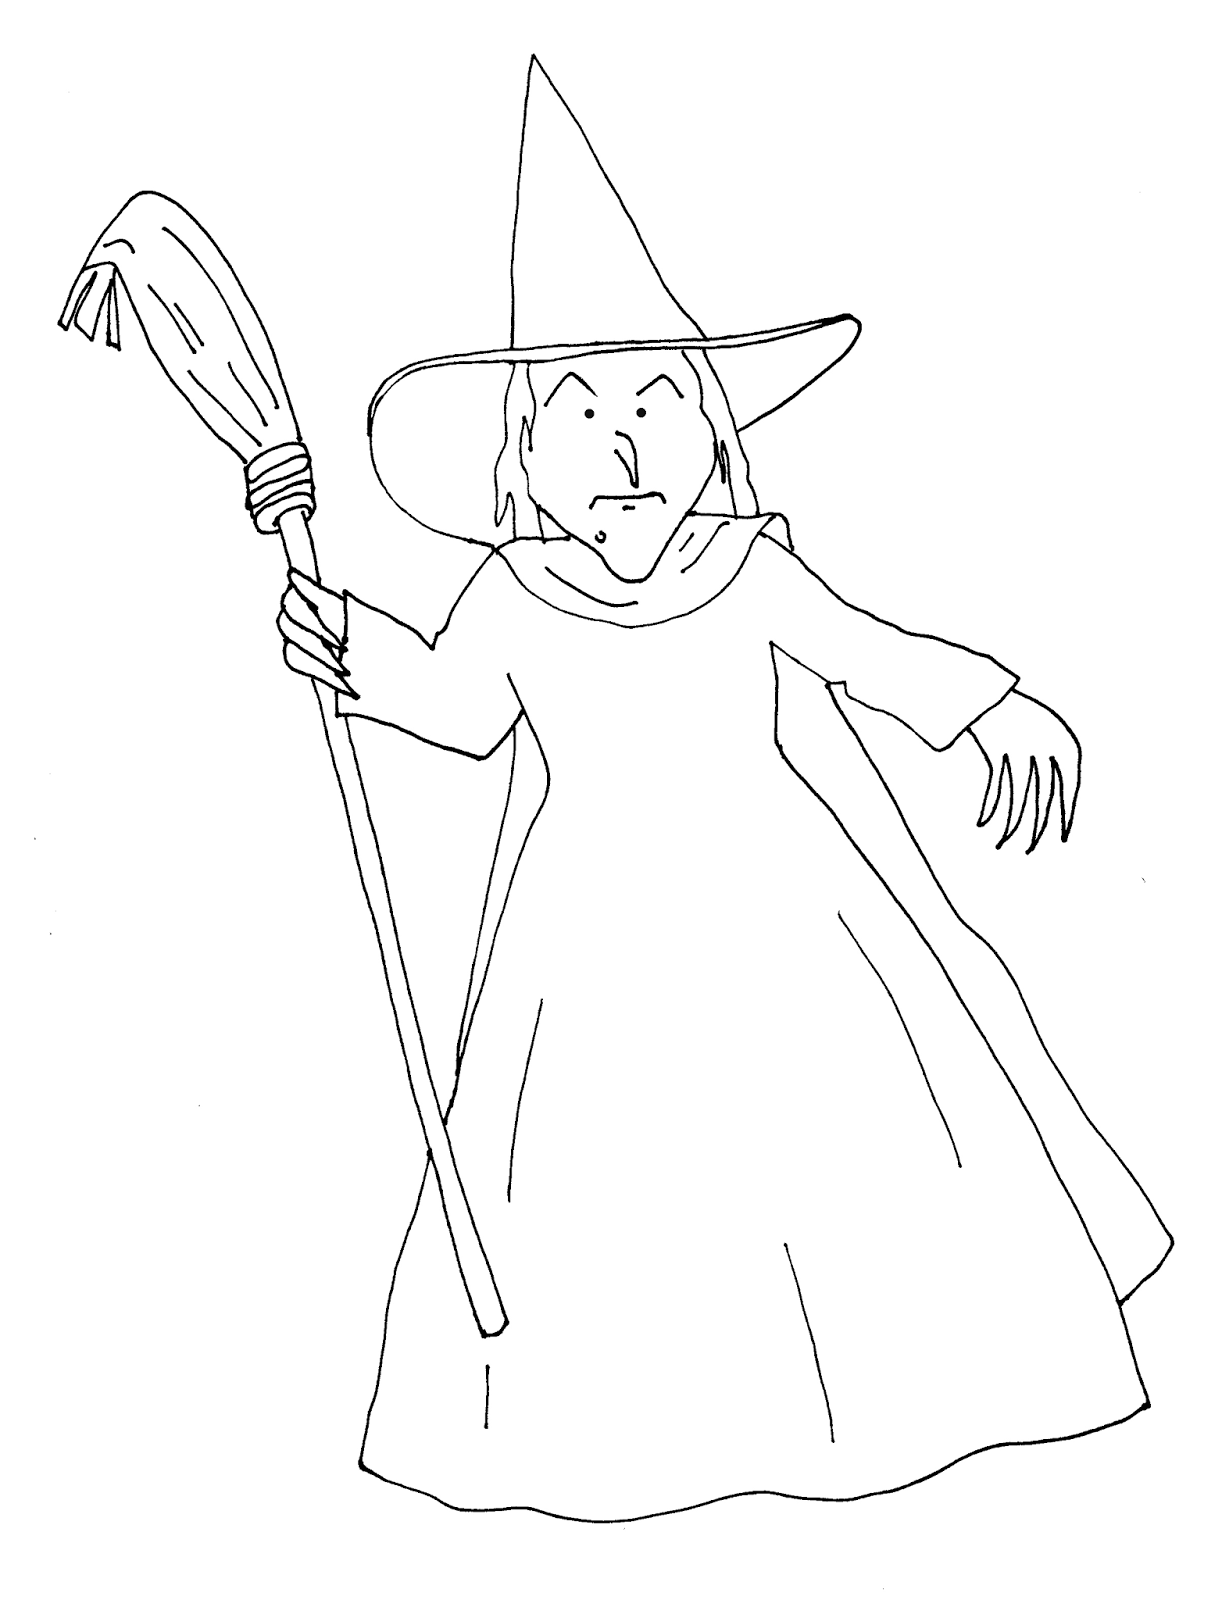 wicked witch of the west coloring pages wicked witch of the west coloring pages coloring pages the coloring wicked witch west pages of